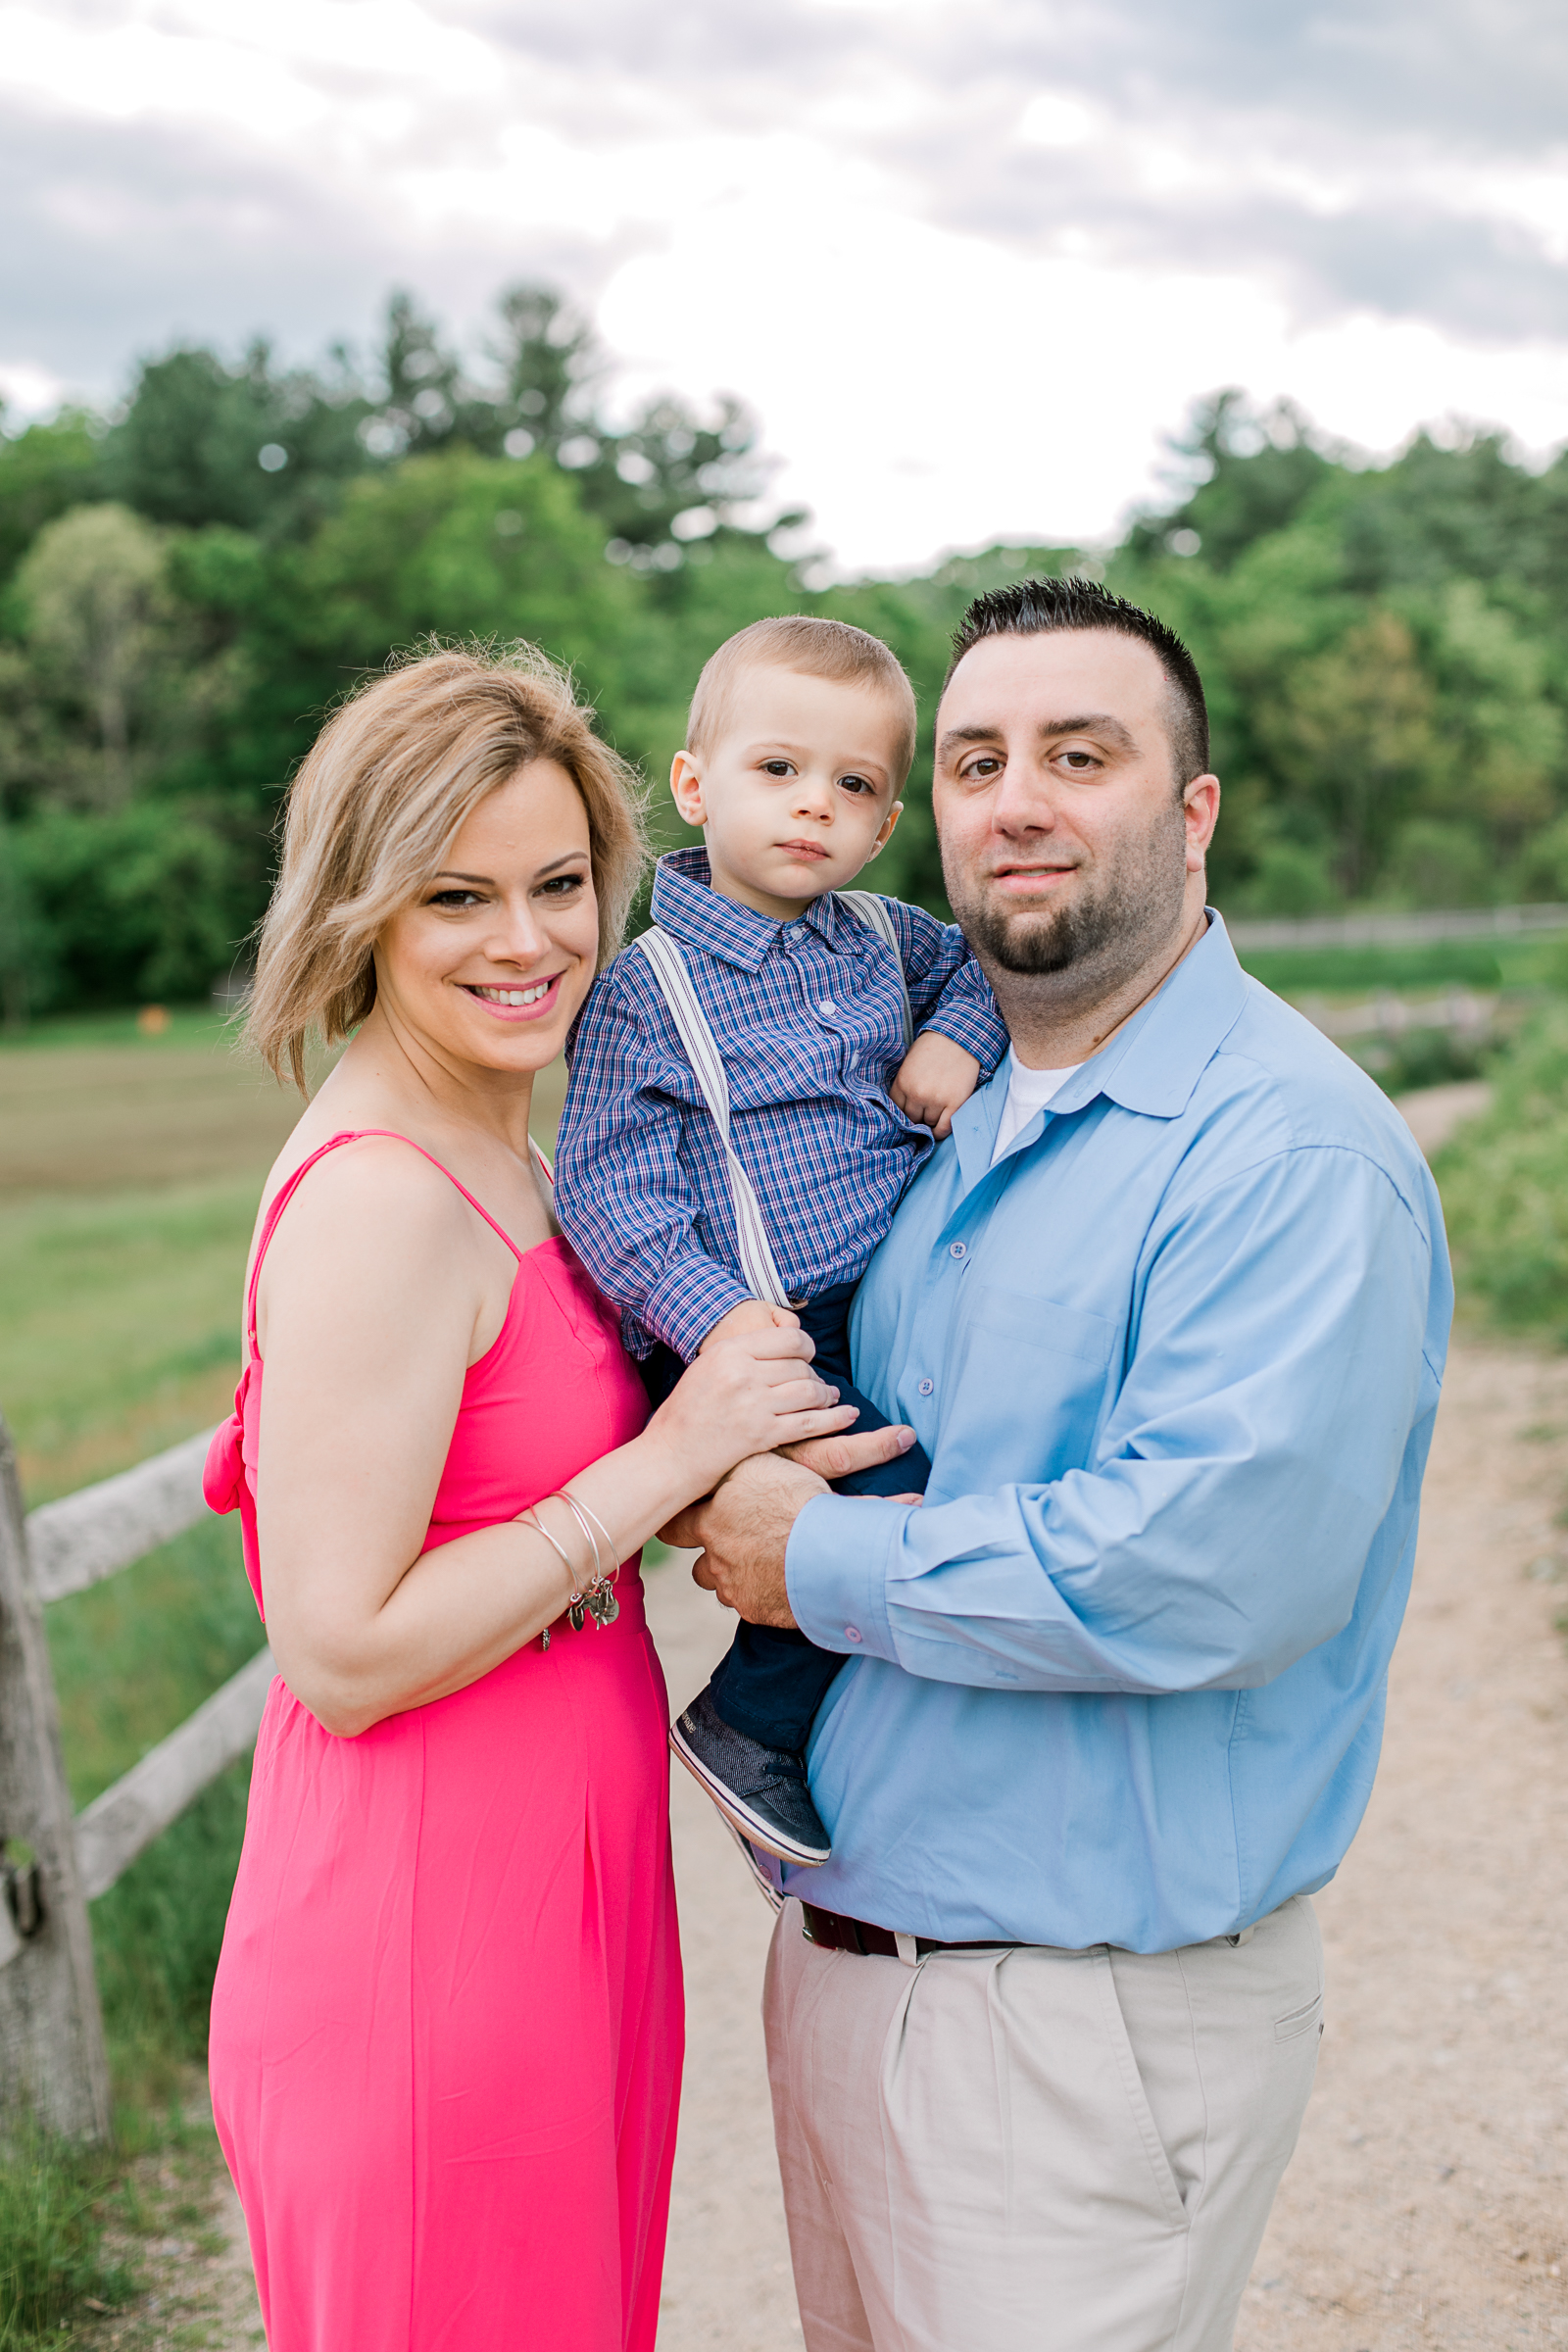 Franklin_cranberry_bog_family_photos_erica_pezente_photography-2.jpg